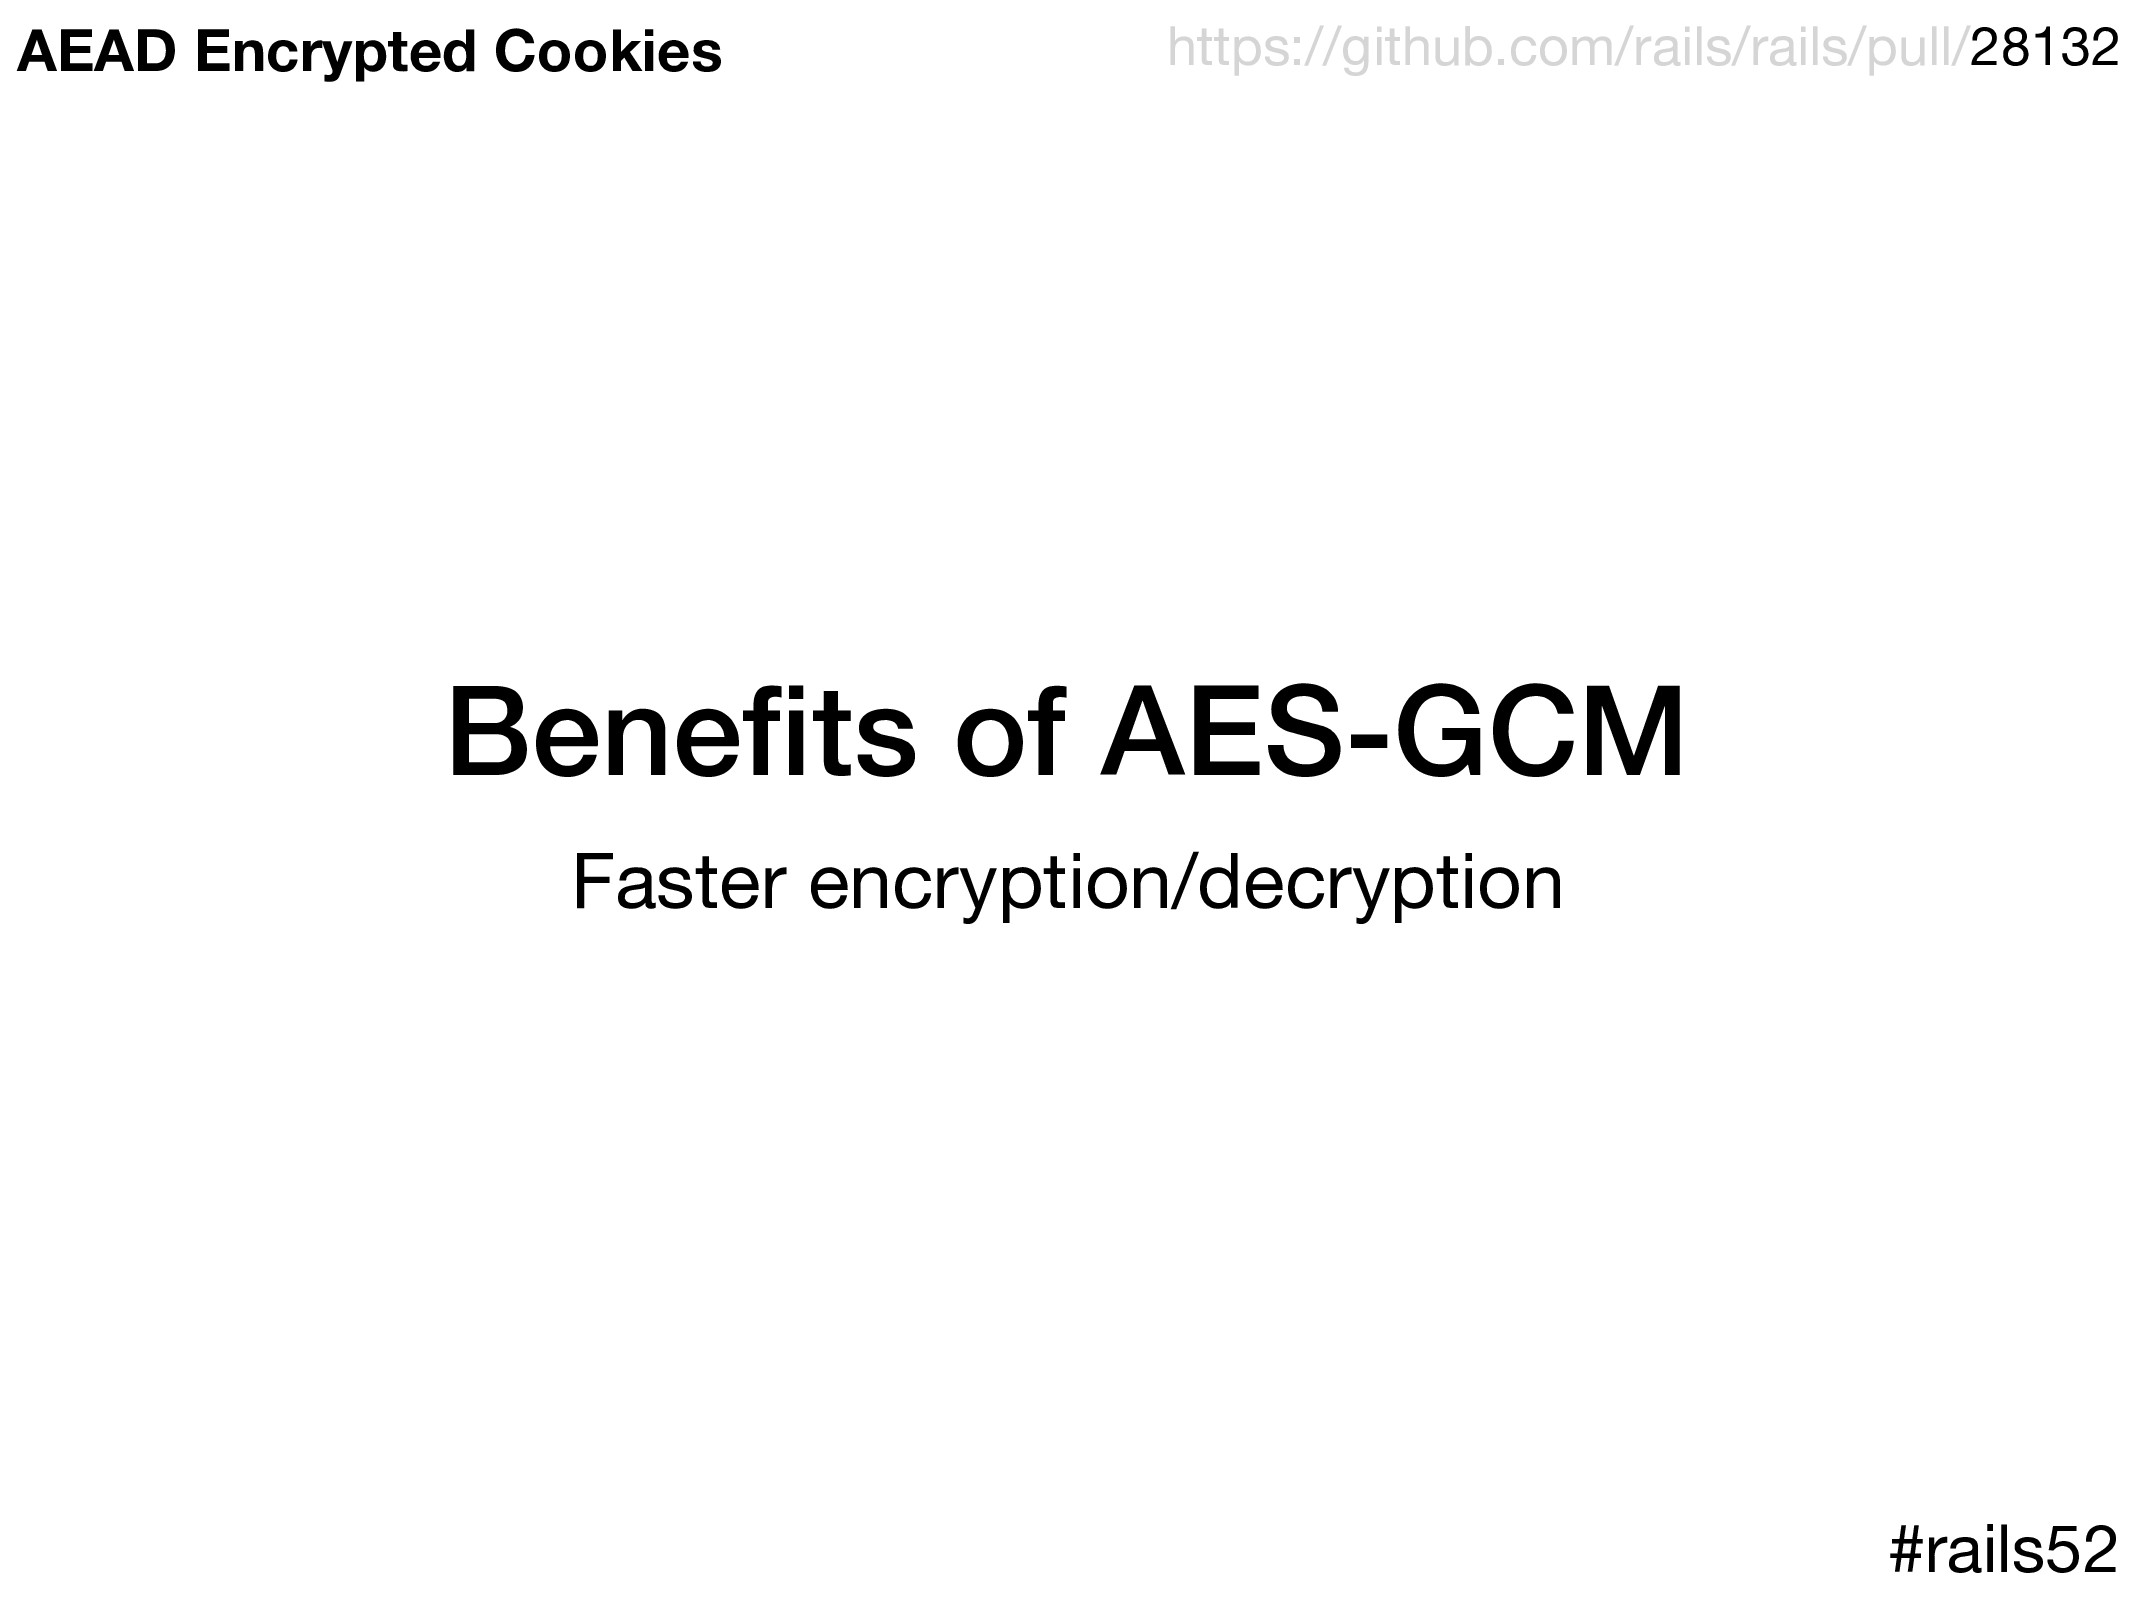 Benefits of AES-GCM Faster encryption/decryption...